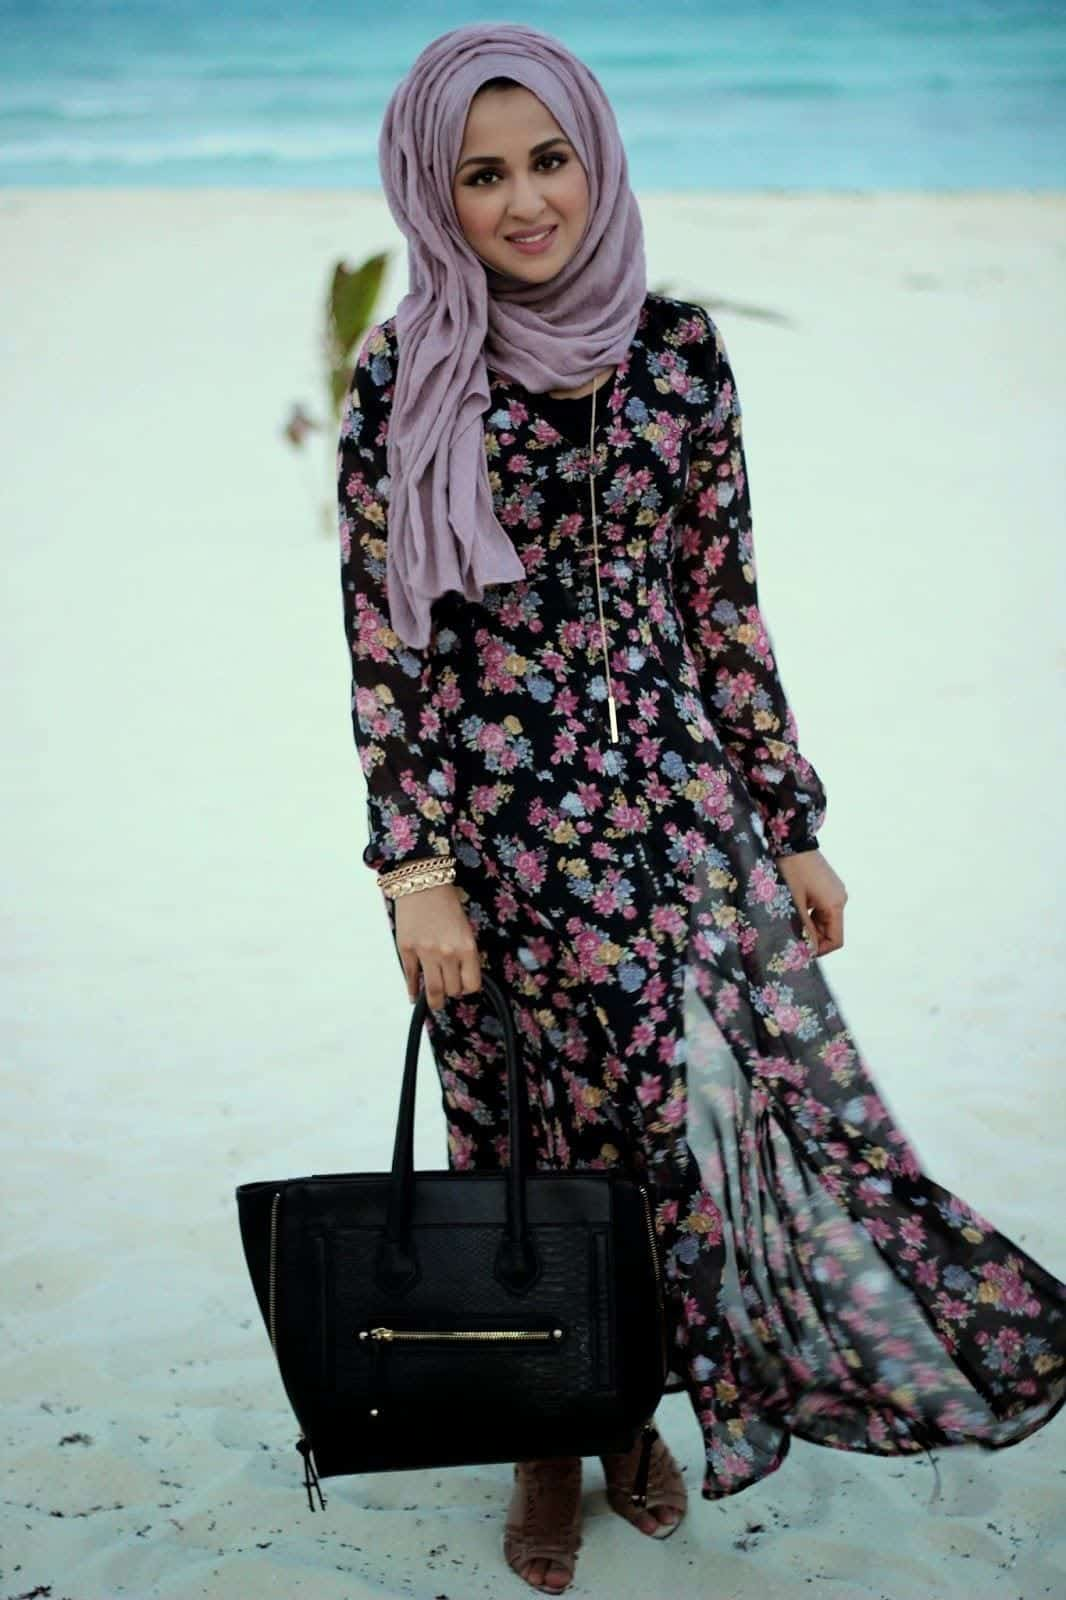 Beach Hijab Outfitsu201334 Modest Beach Dresses For Muslim Girls